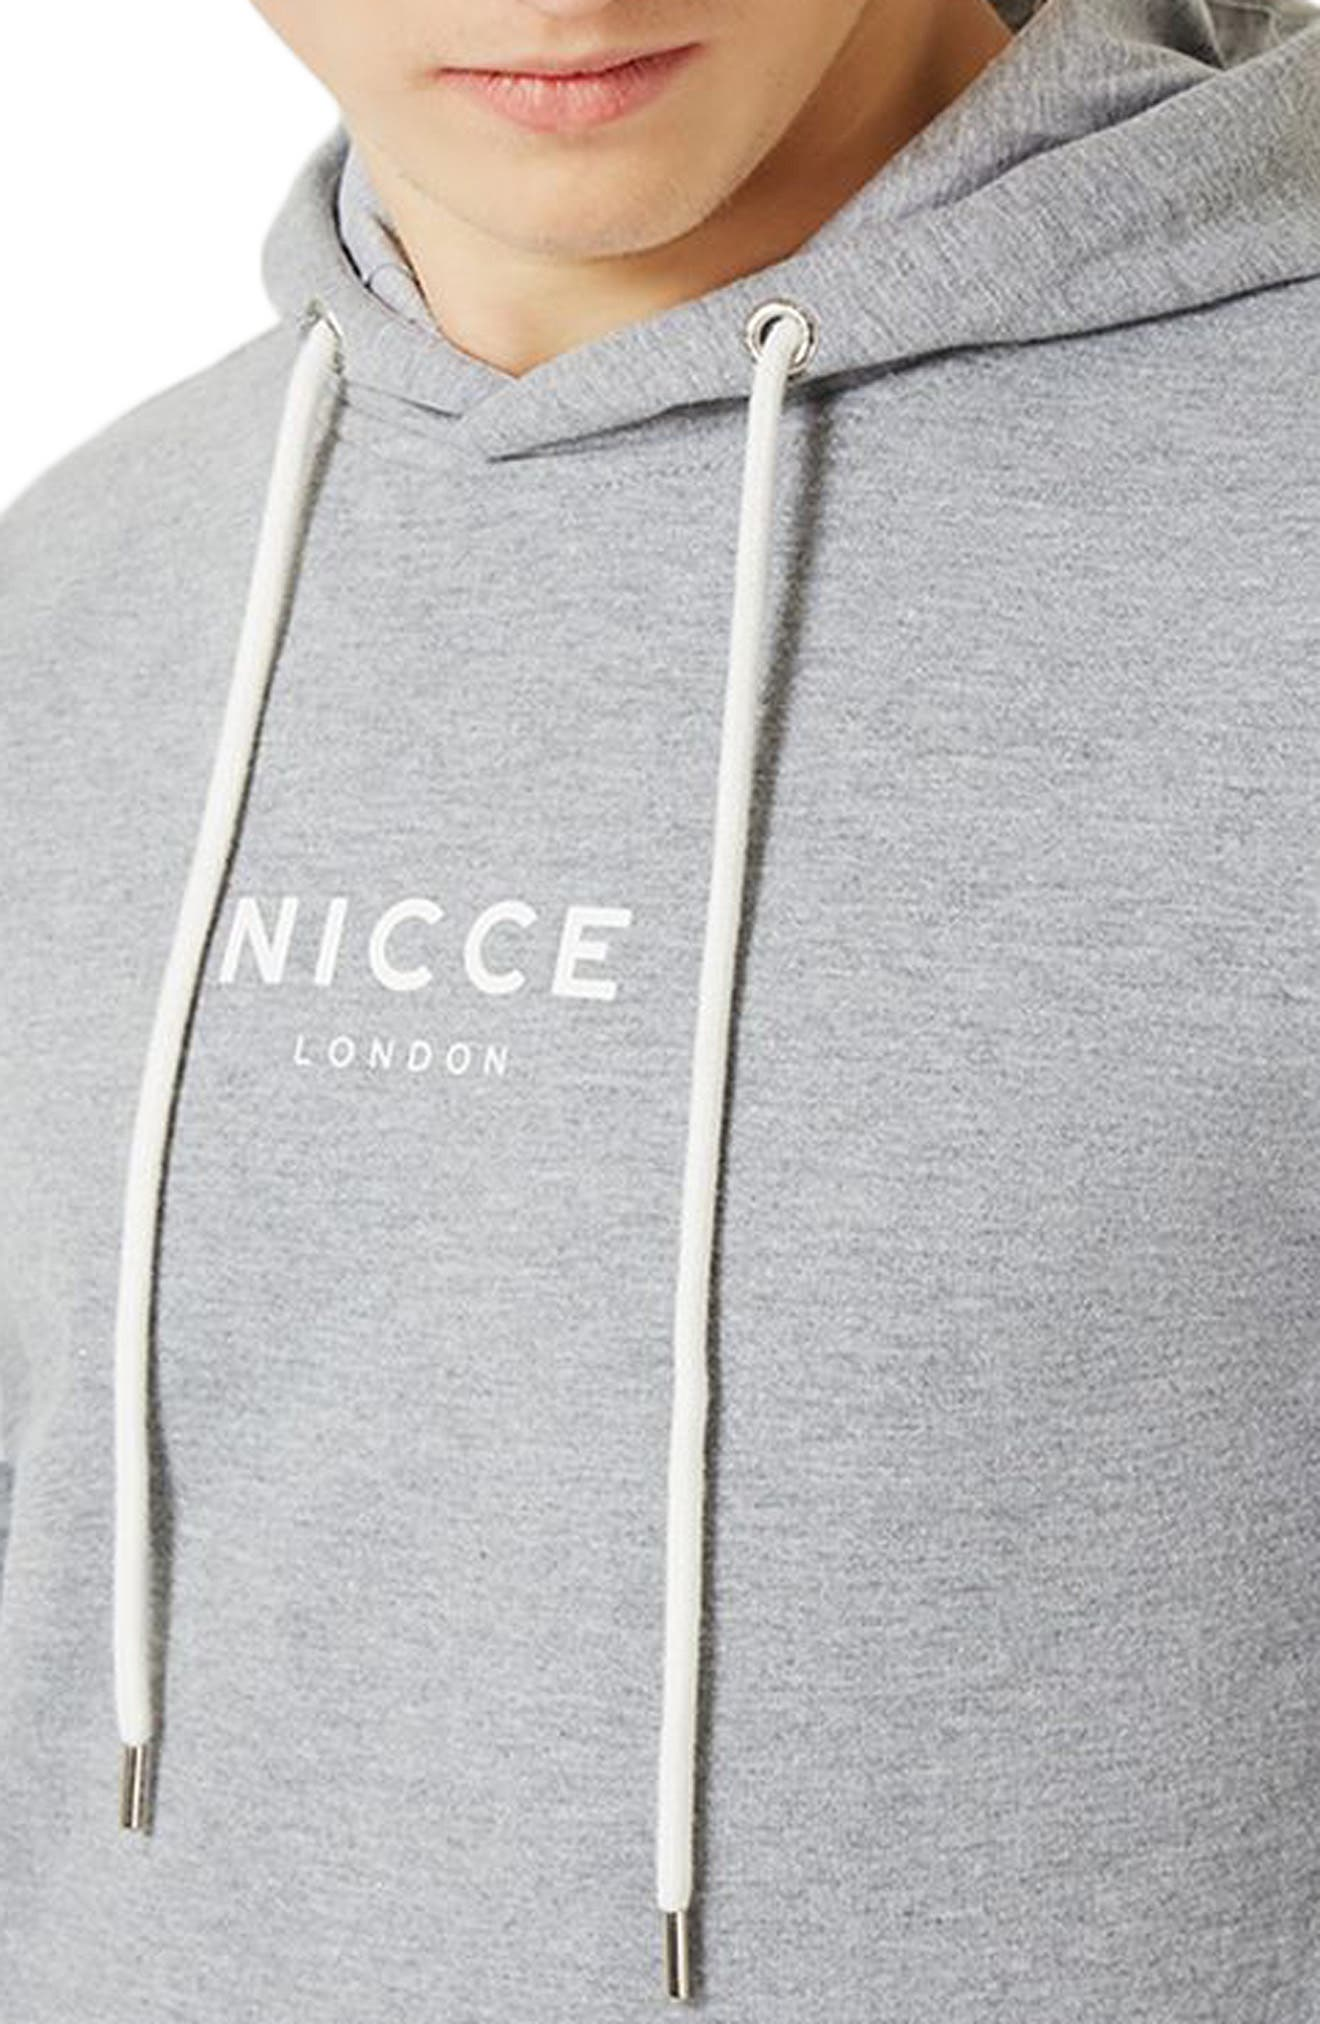 NICCE Slim Fit Colorblock Hoodie,                             Alternate thumbnail 3, color,                             Light Grey Multi